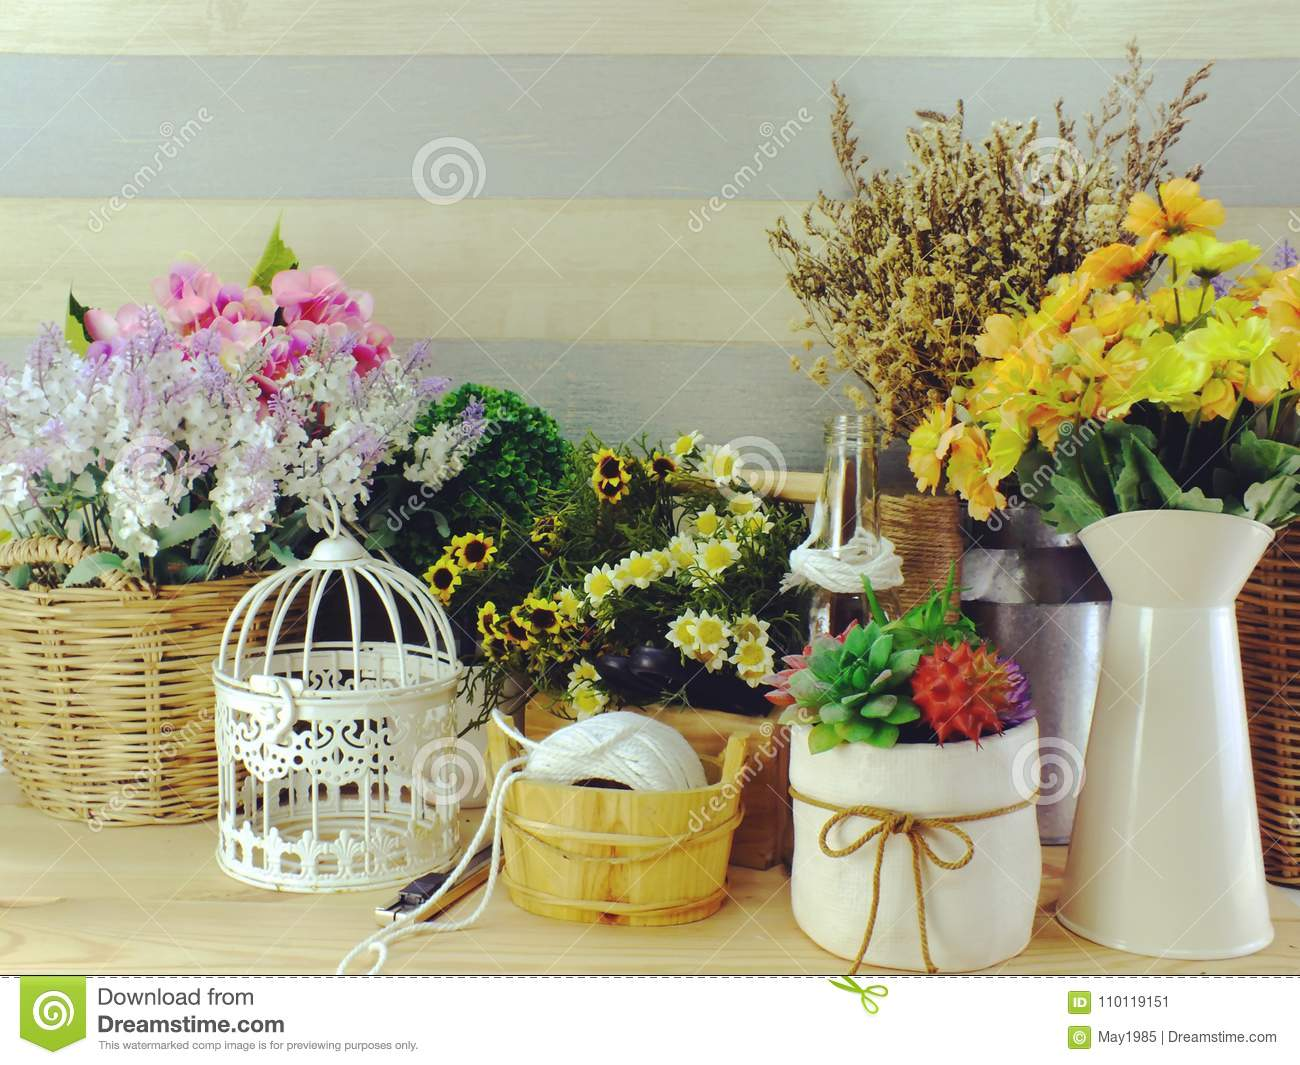 Garden And Home Decor With Accessories Decoration For Home Living And  Wedding Event